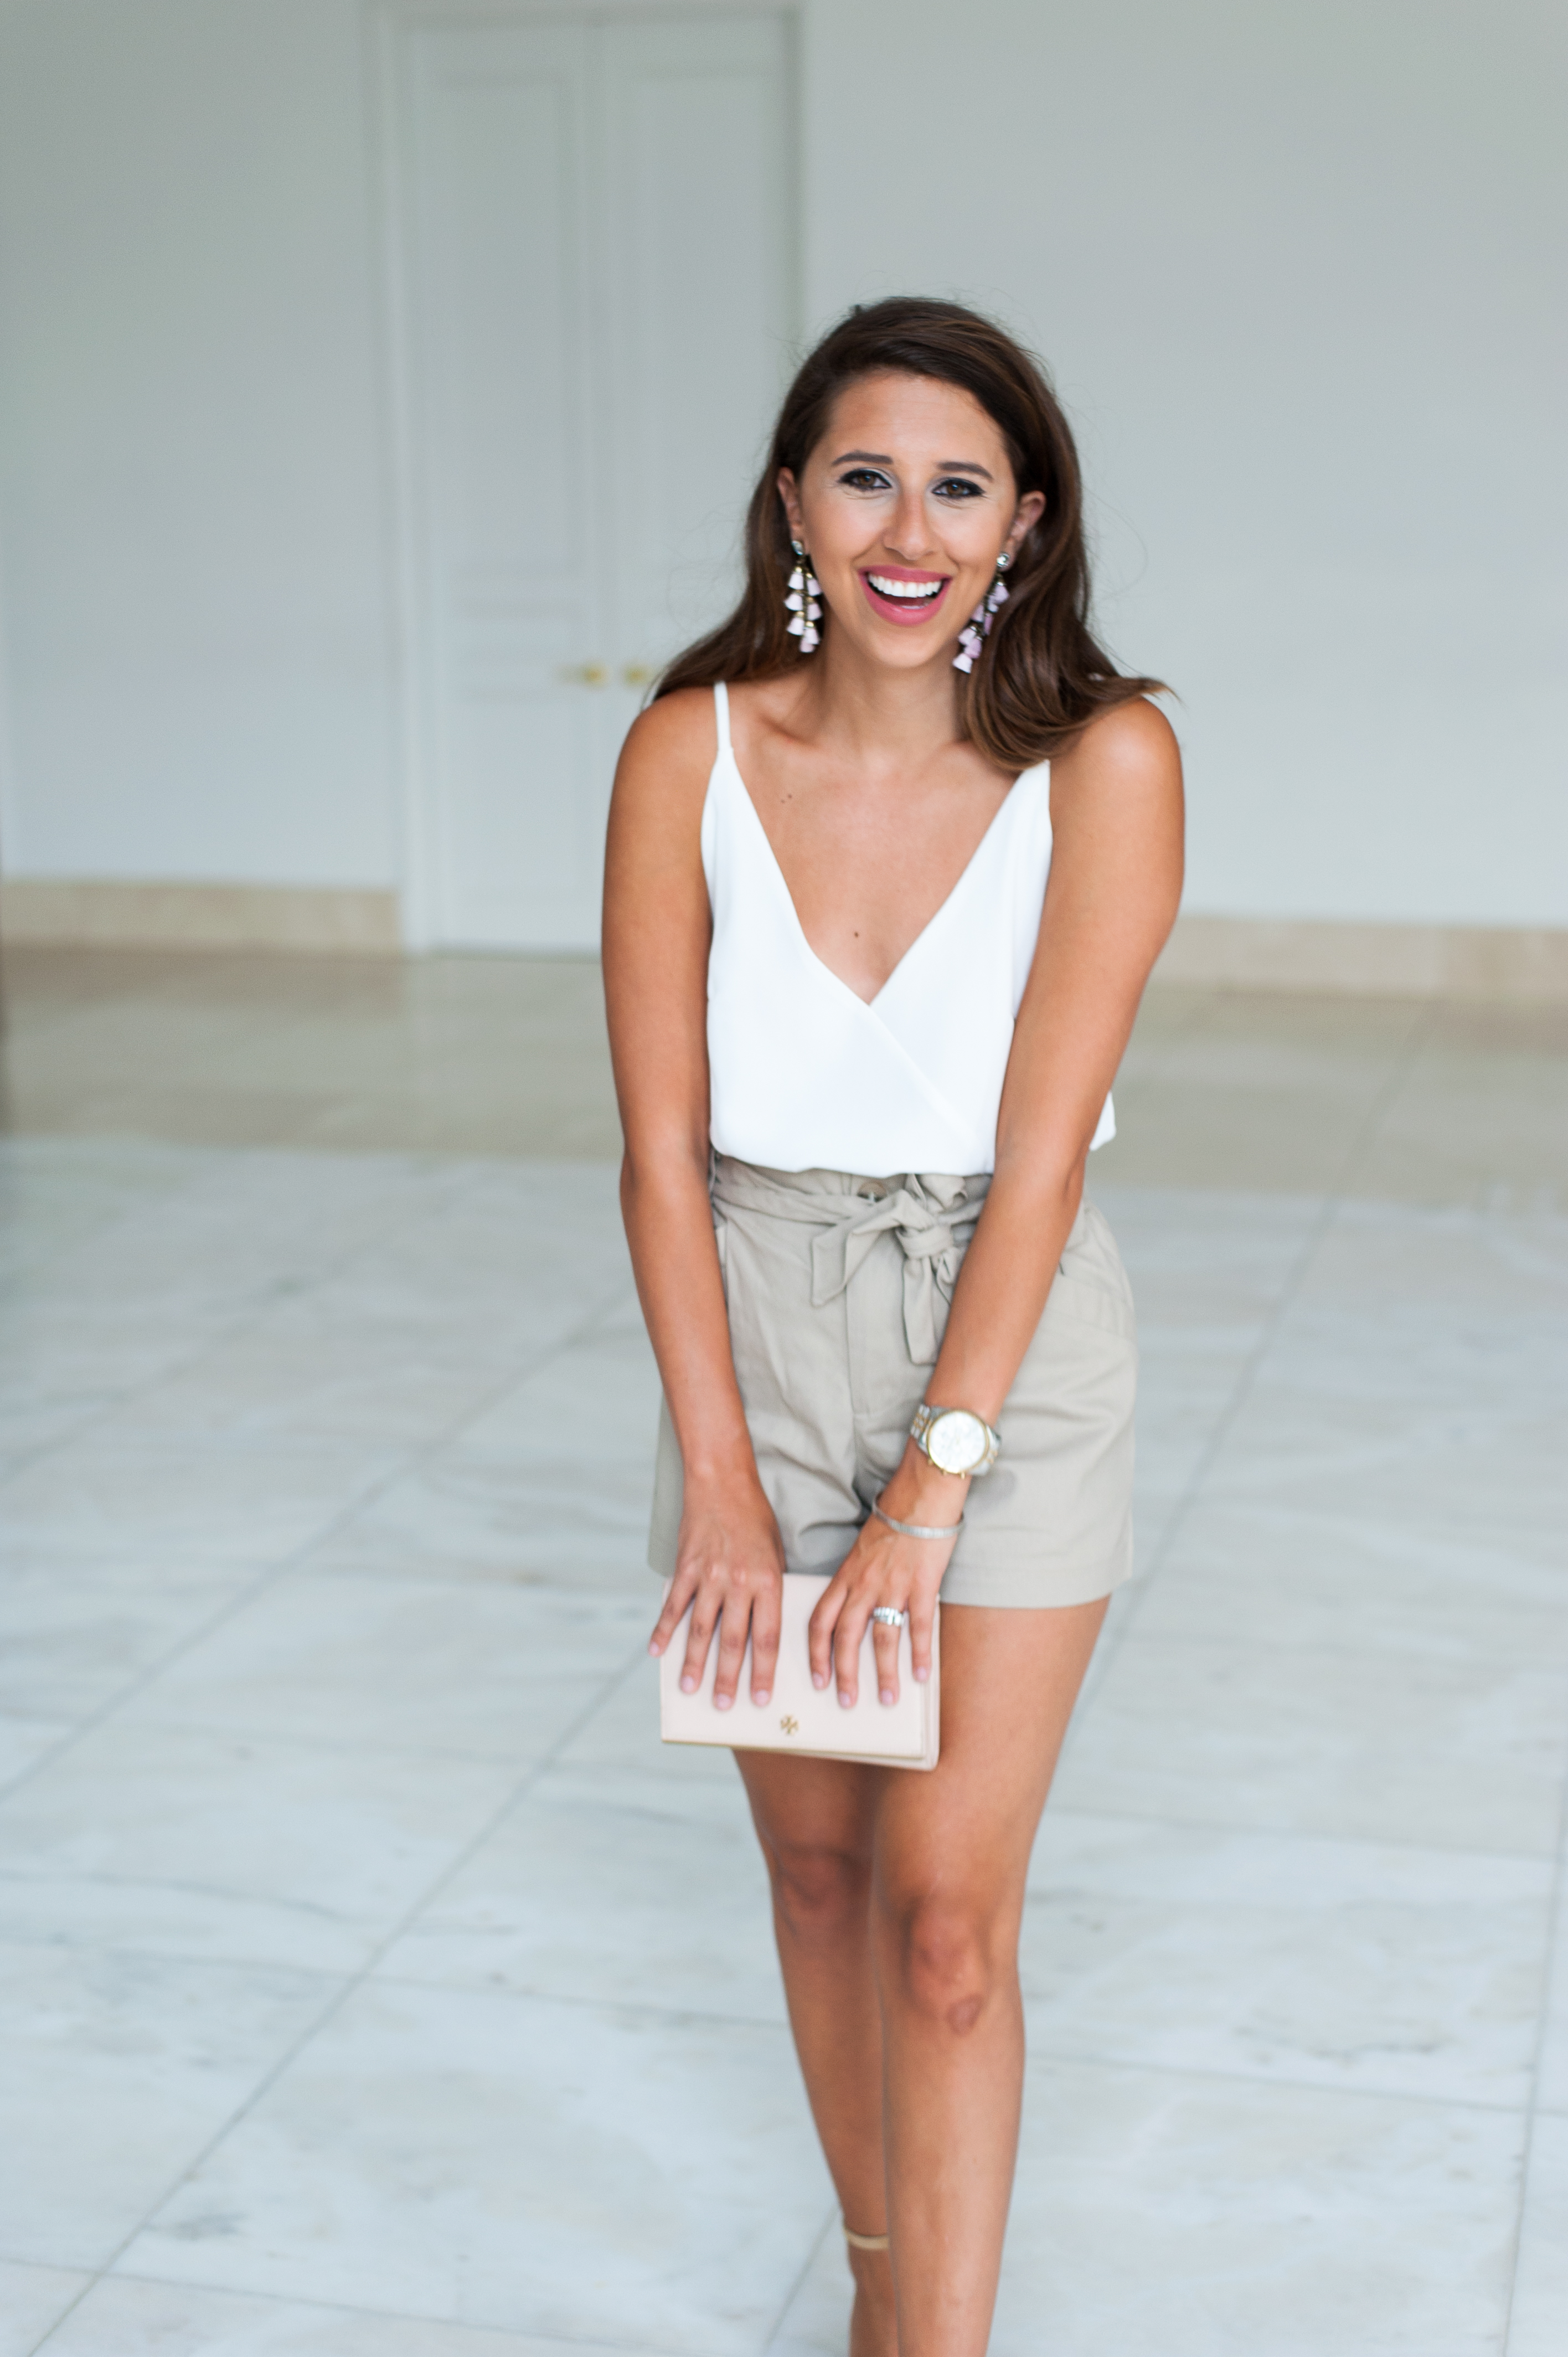 Dress Up Buttercup | Houston Fashion Blog - Dede Raad | The Simple Things